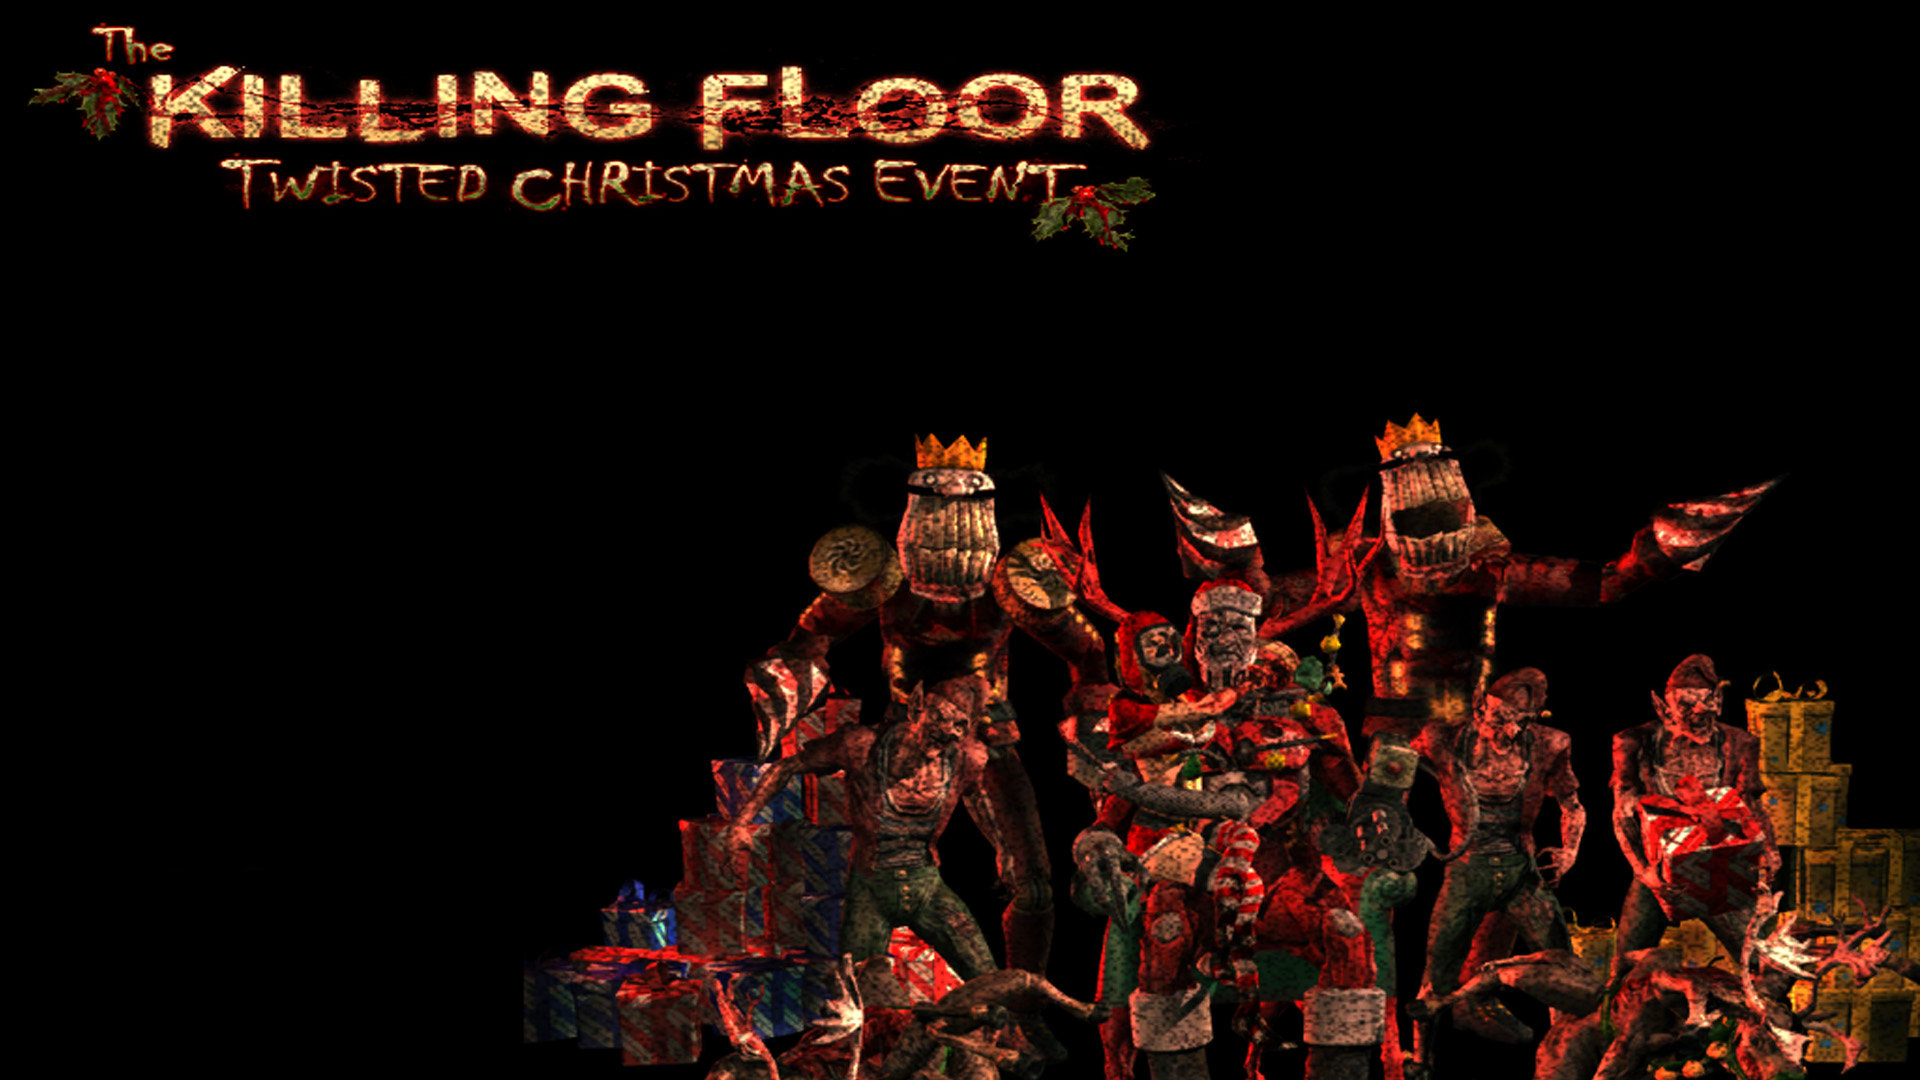 Killing Floor Wallpapers 1920x1080 Full Hd 1080p Desktop Backgrounds